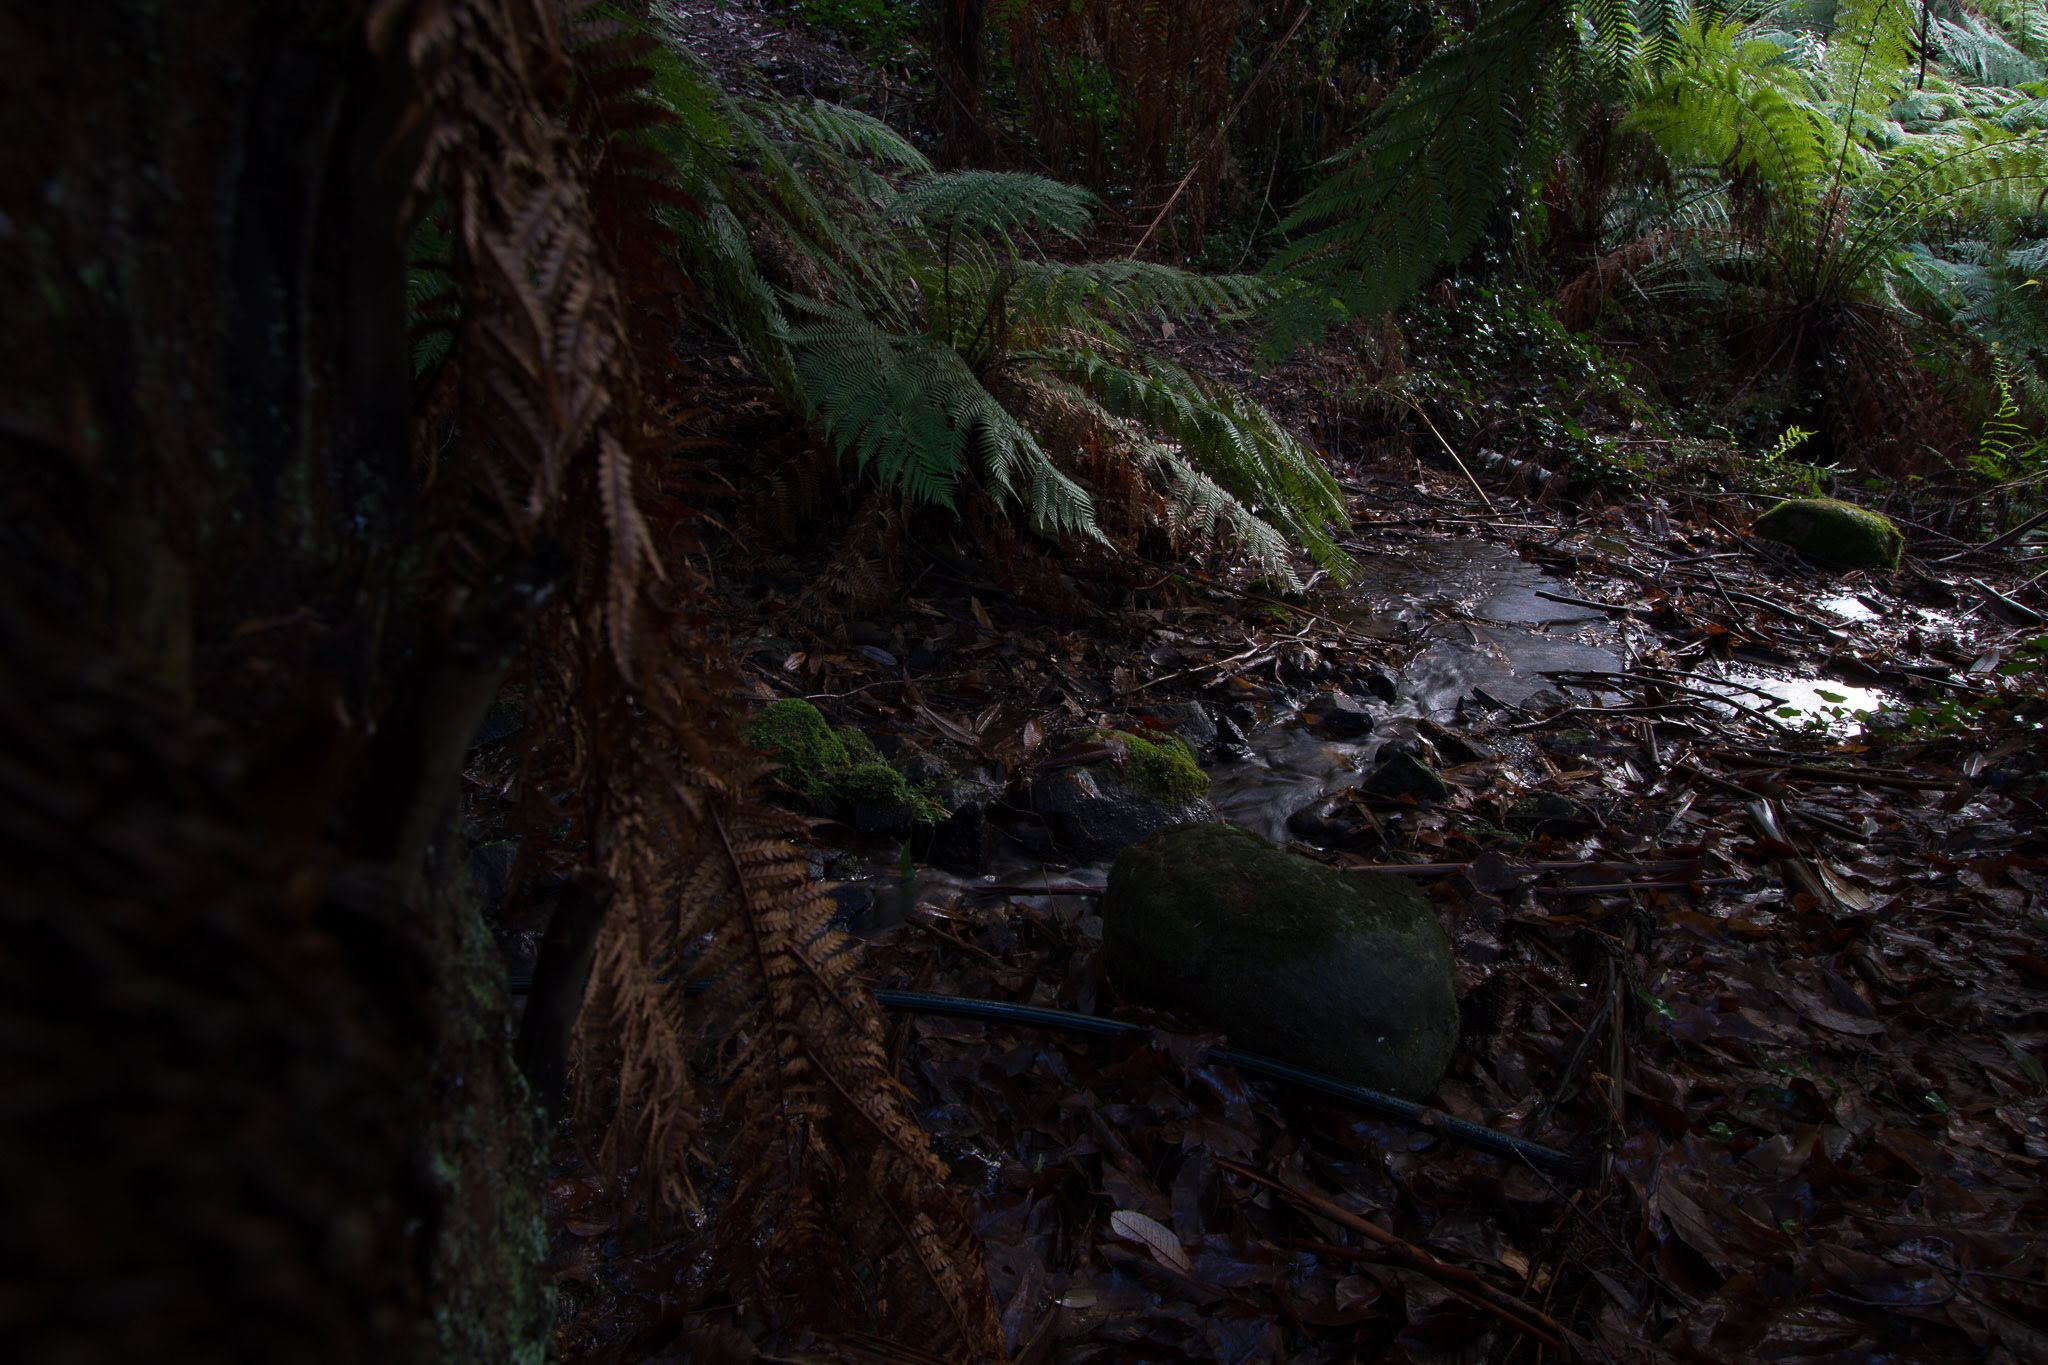 A feature of the valleys of the Arthurs, Running and Deep Creeks in the early years of settlement was the profusion of ferns along the sheltered banks of the streams and in moist gullies.  Photo credit Wade Ashley at Dygiphy